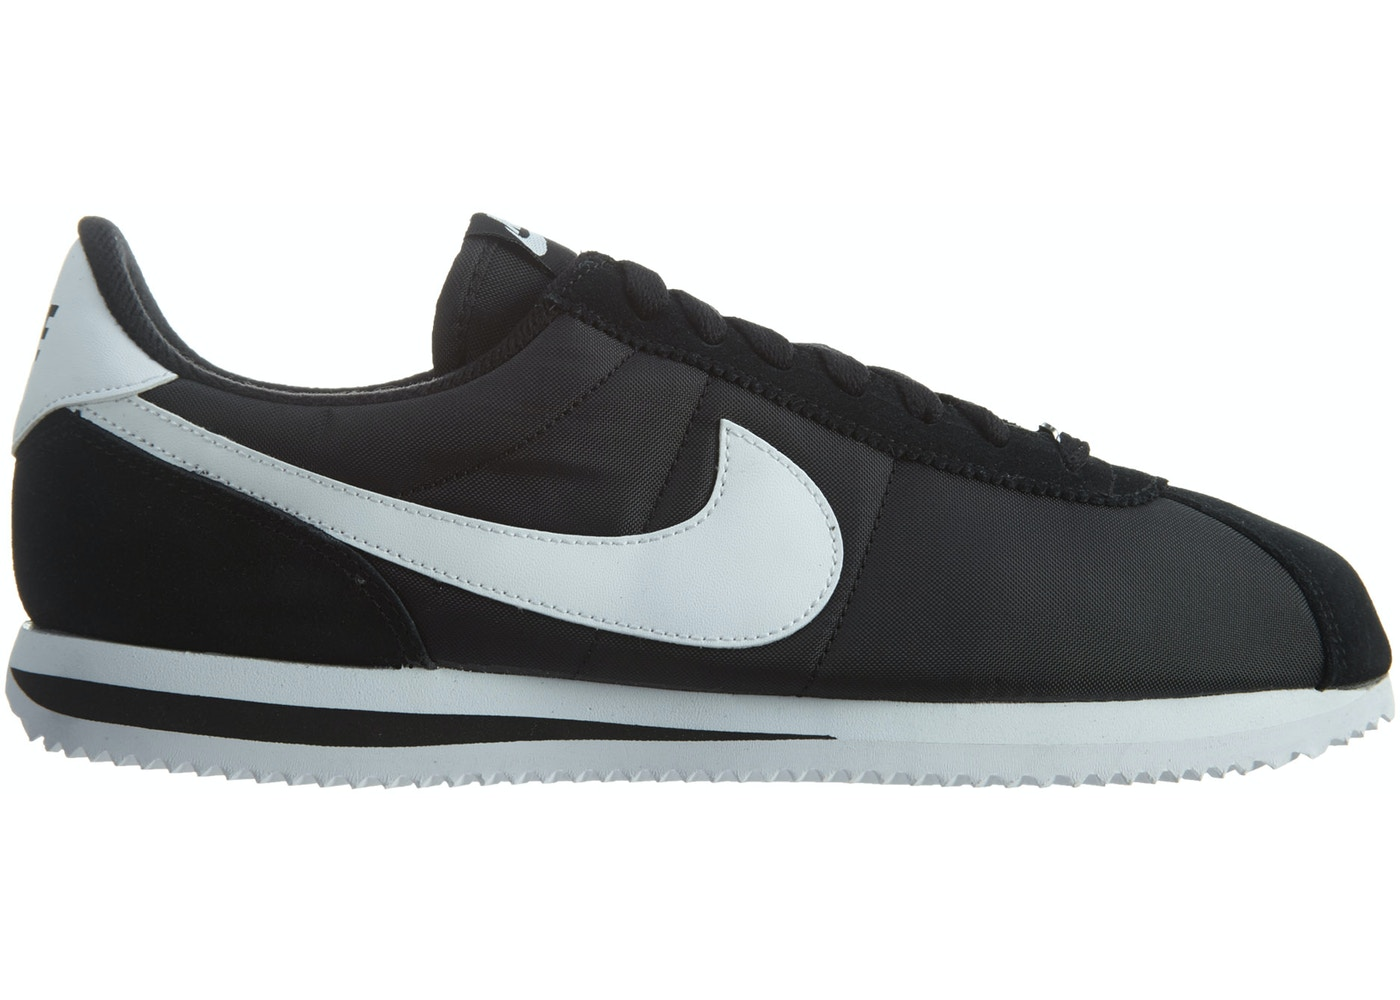 quality design 3b974 4346a Nike Cortez Basic Nylon Black White-Metallic Silver - 819720-011